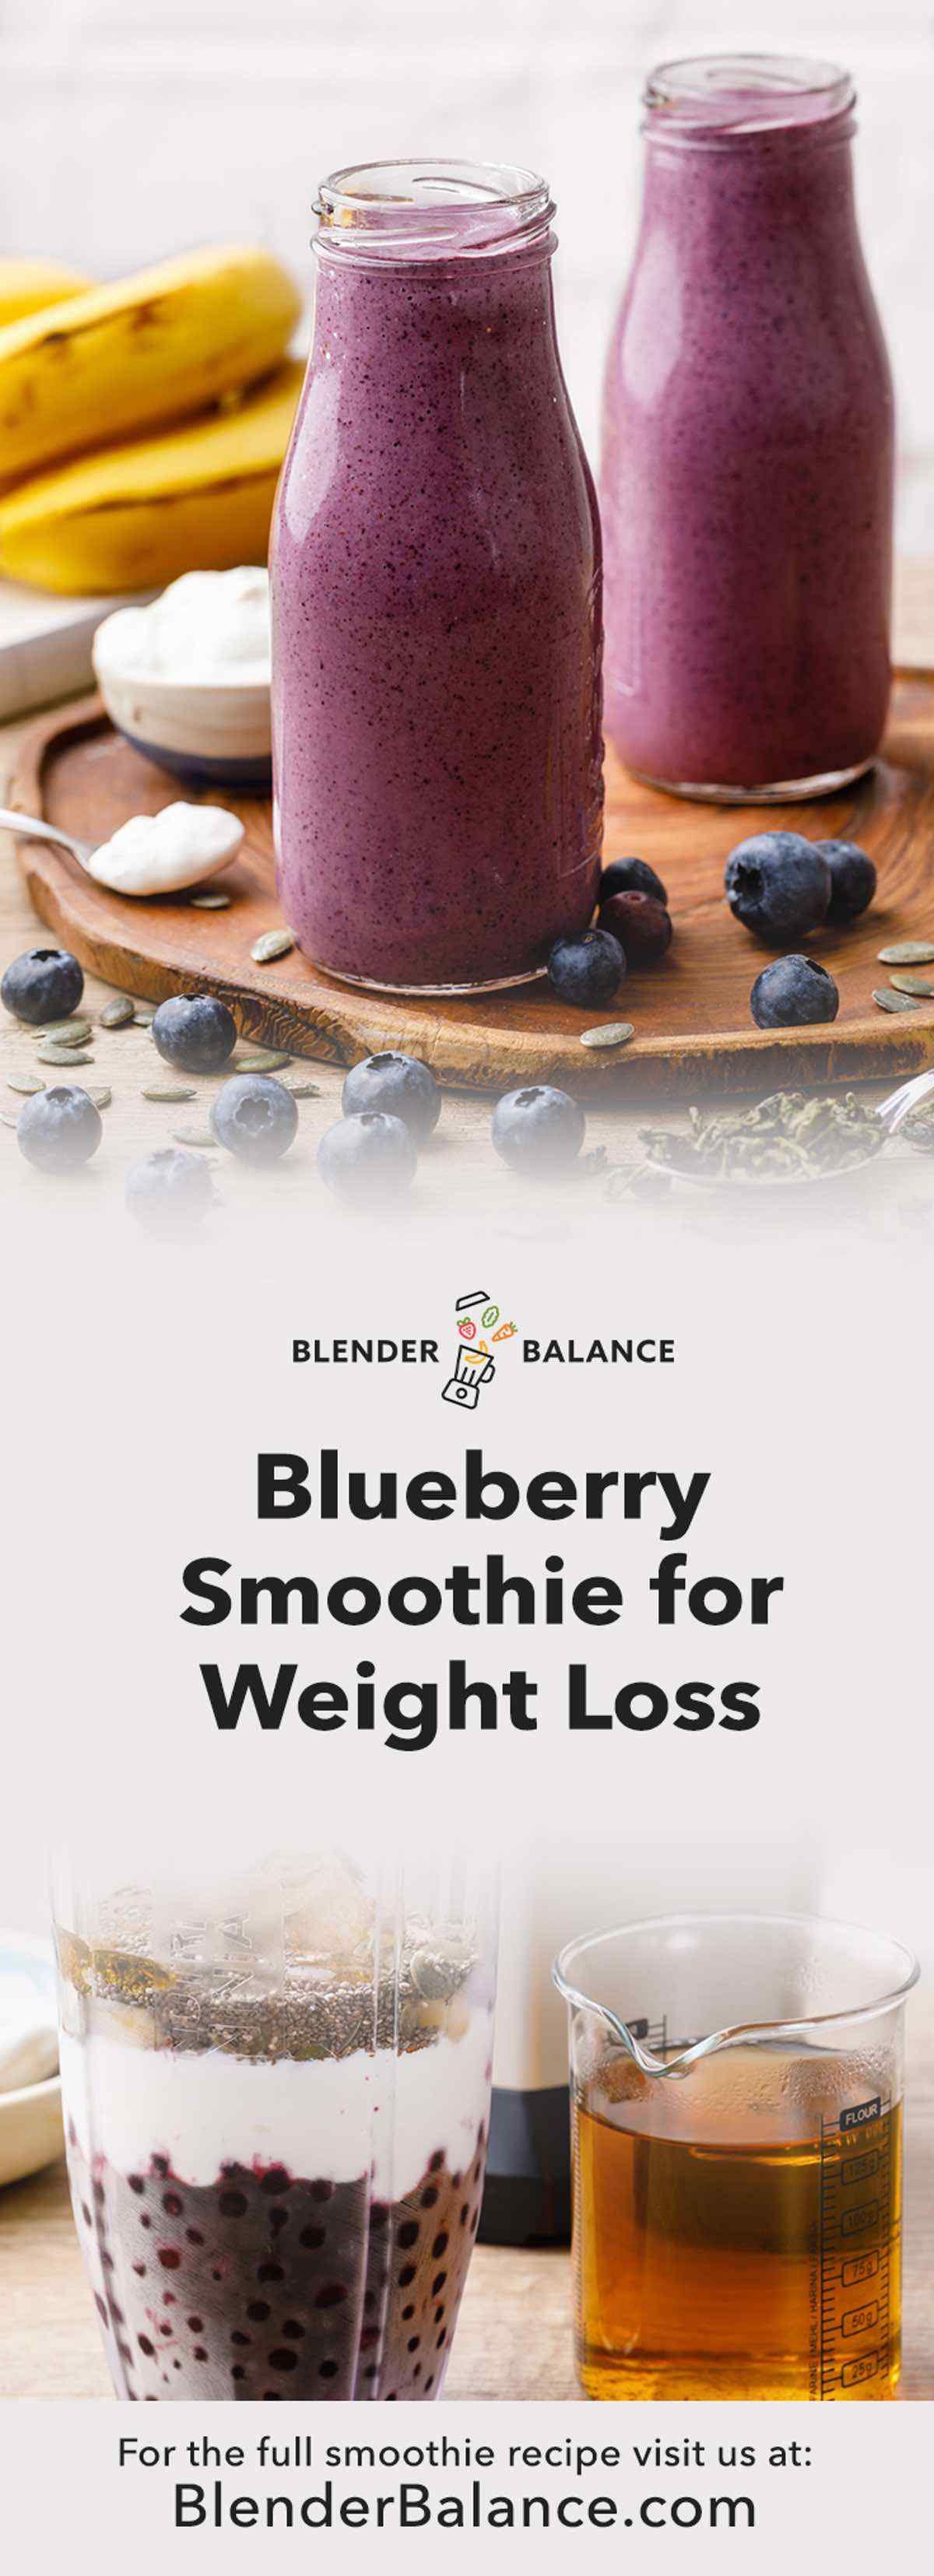 Easy Blueberry Smoothie for Weight Loss